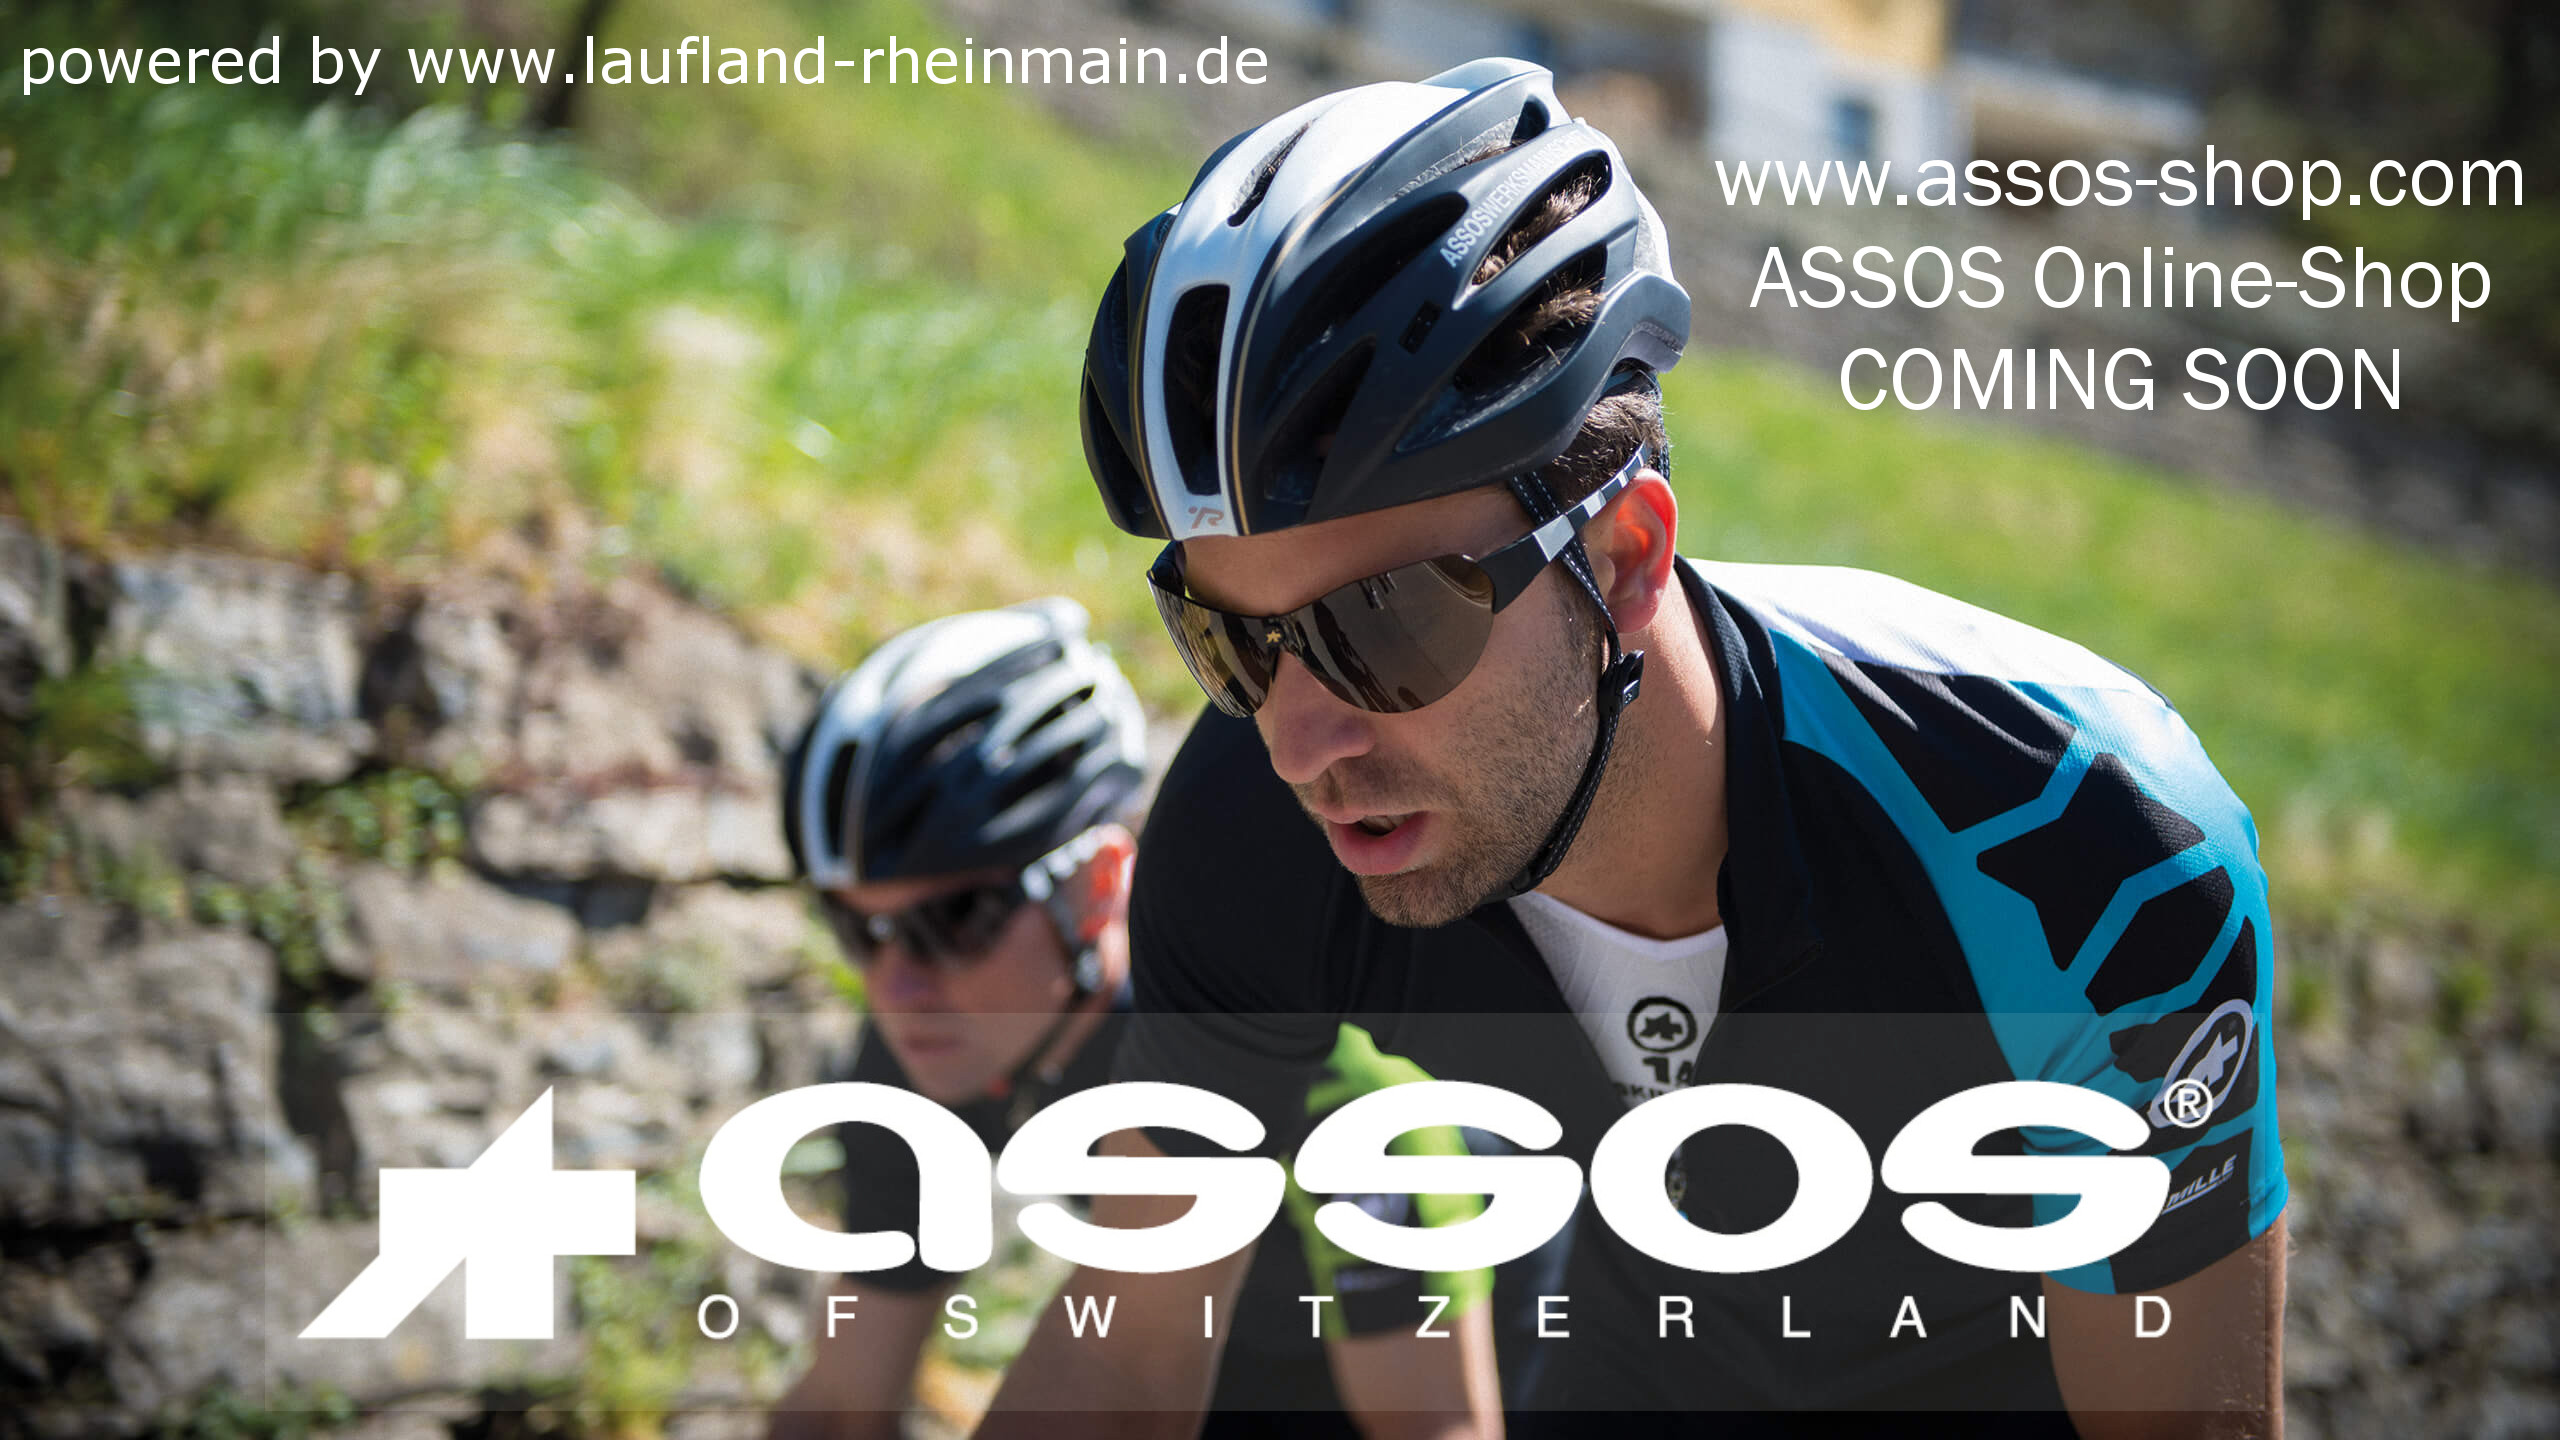 assos-shop.com - coming soon